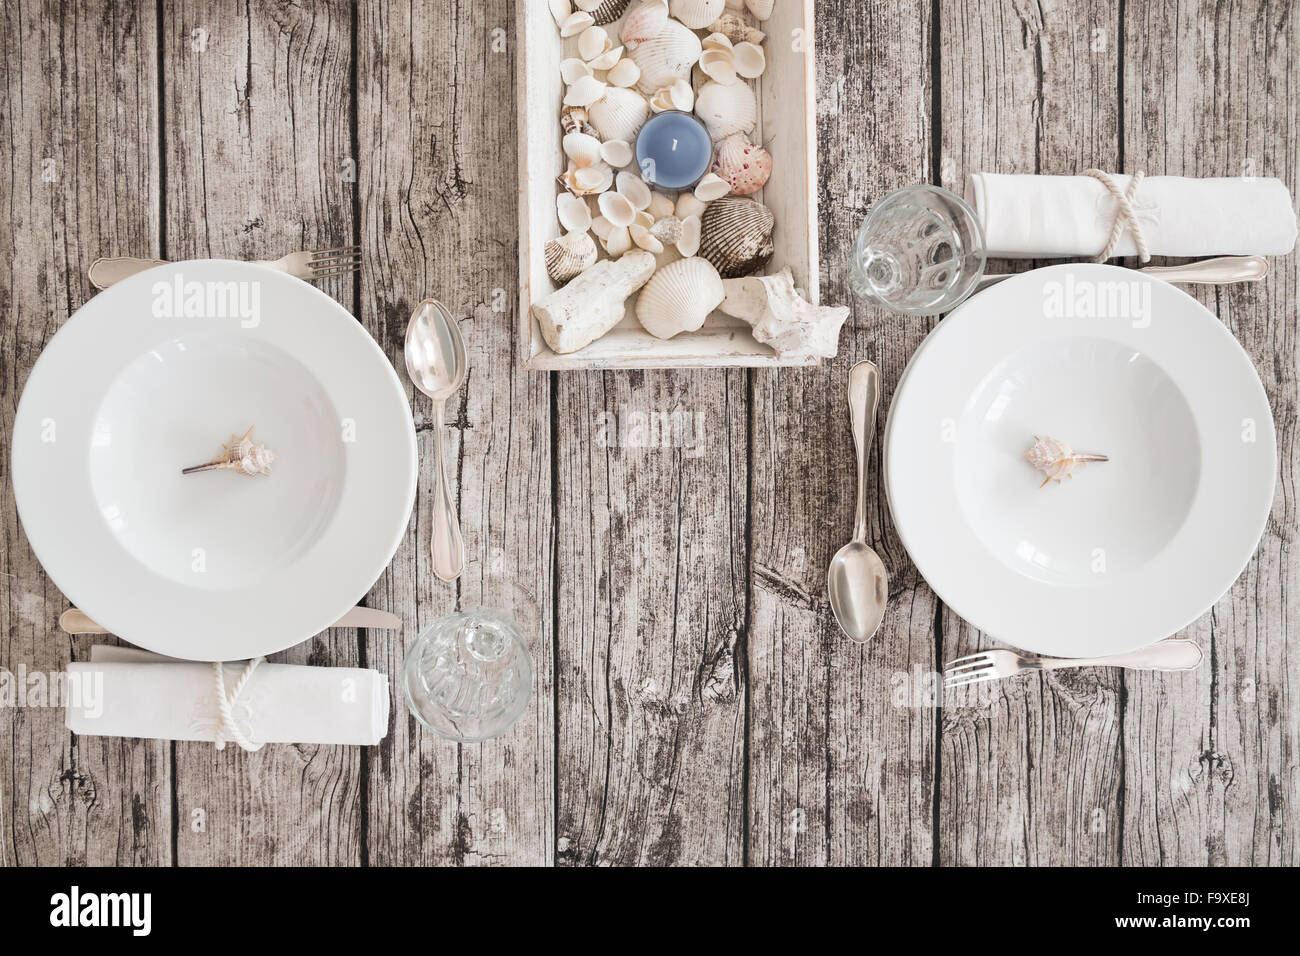 Two place settings on maritime laid table - Stock Image